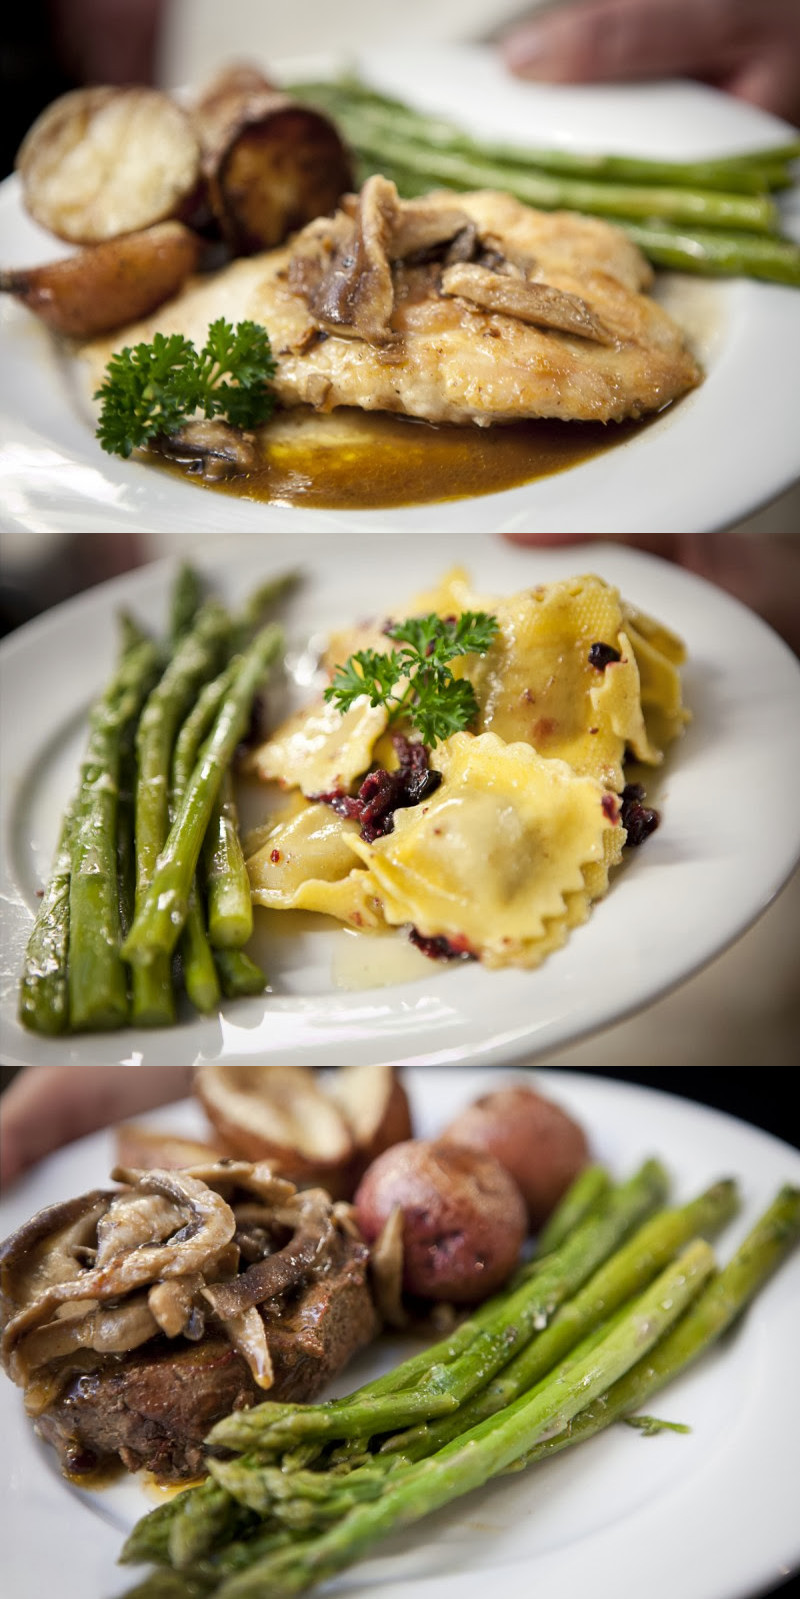 walleye, ravioli and steak - entree options